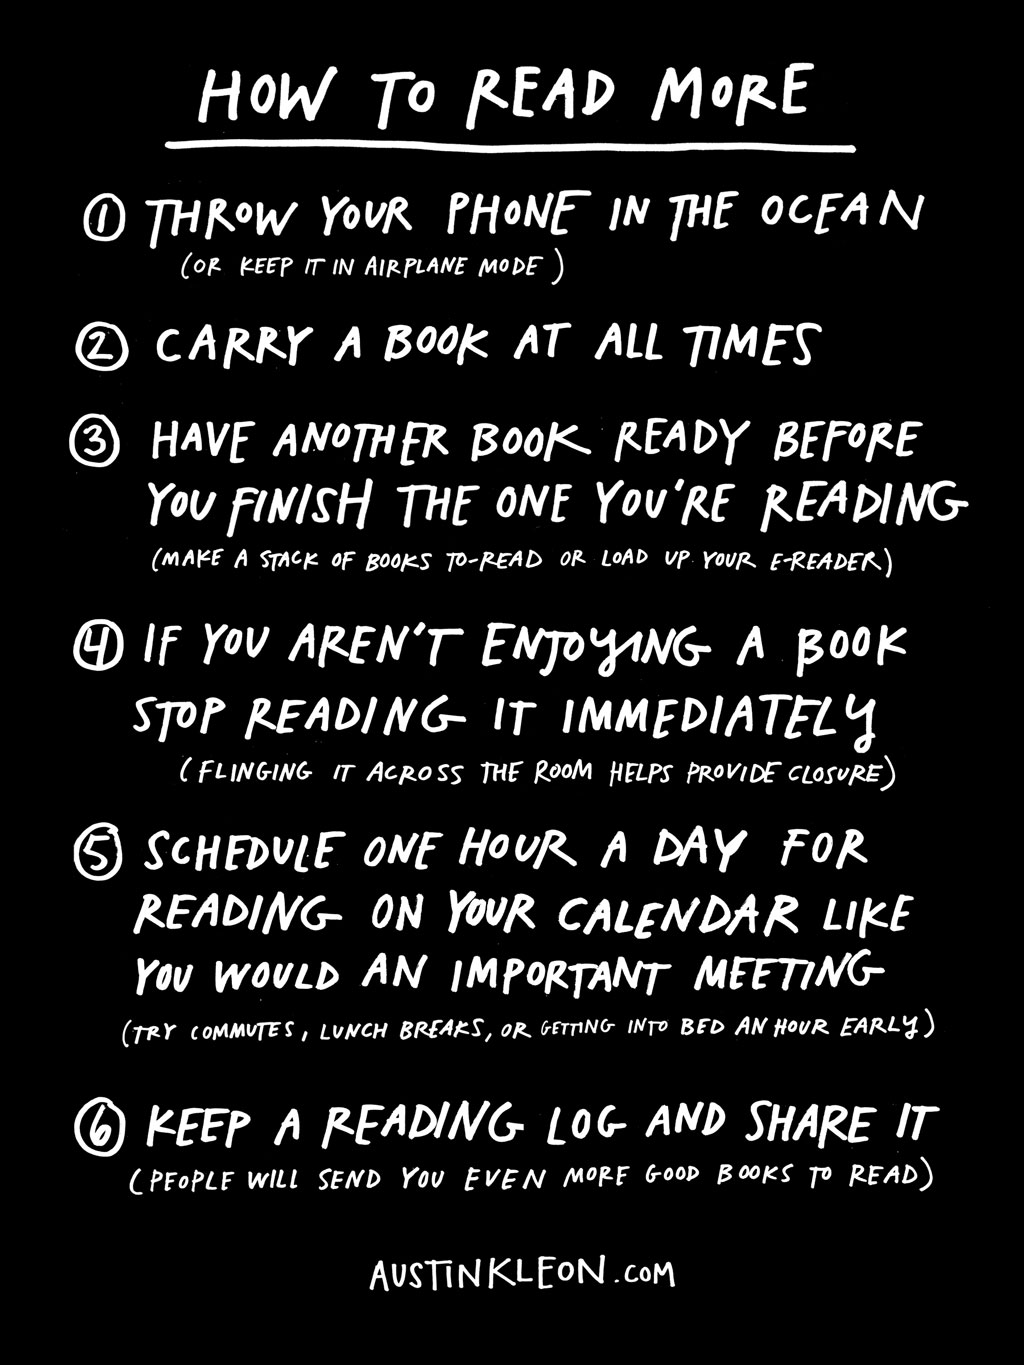 Austin Kleon how to read more